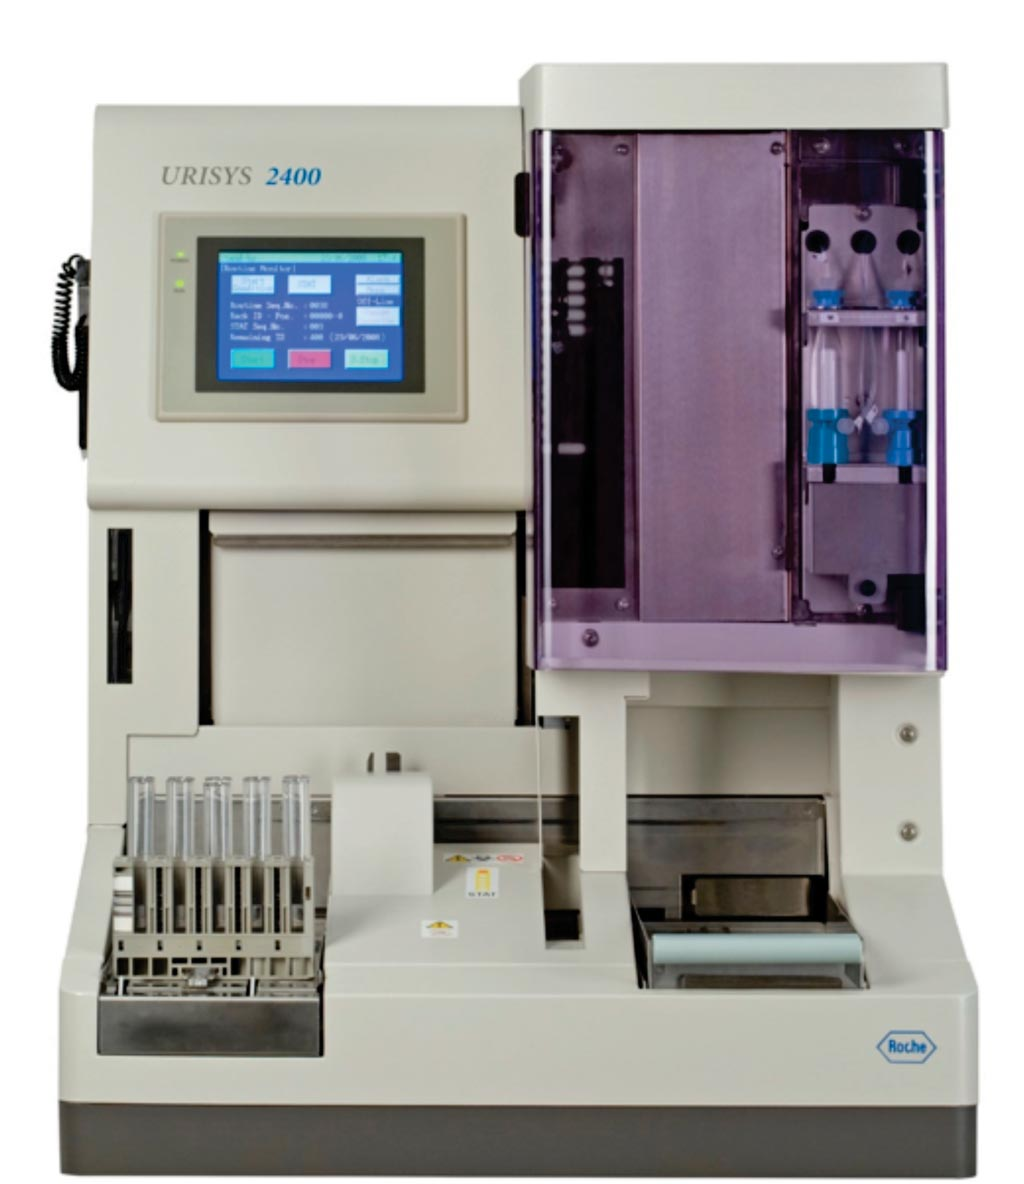 Image: The Urisys 2400 urine analyzer (Photo courtesy of Roche Diagnostics).